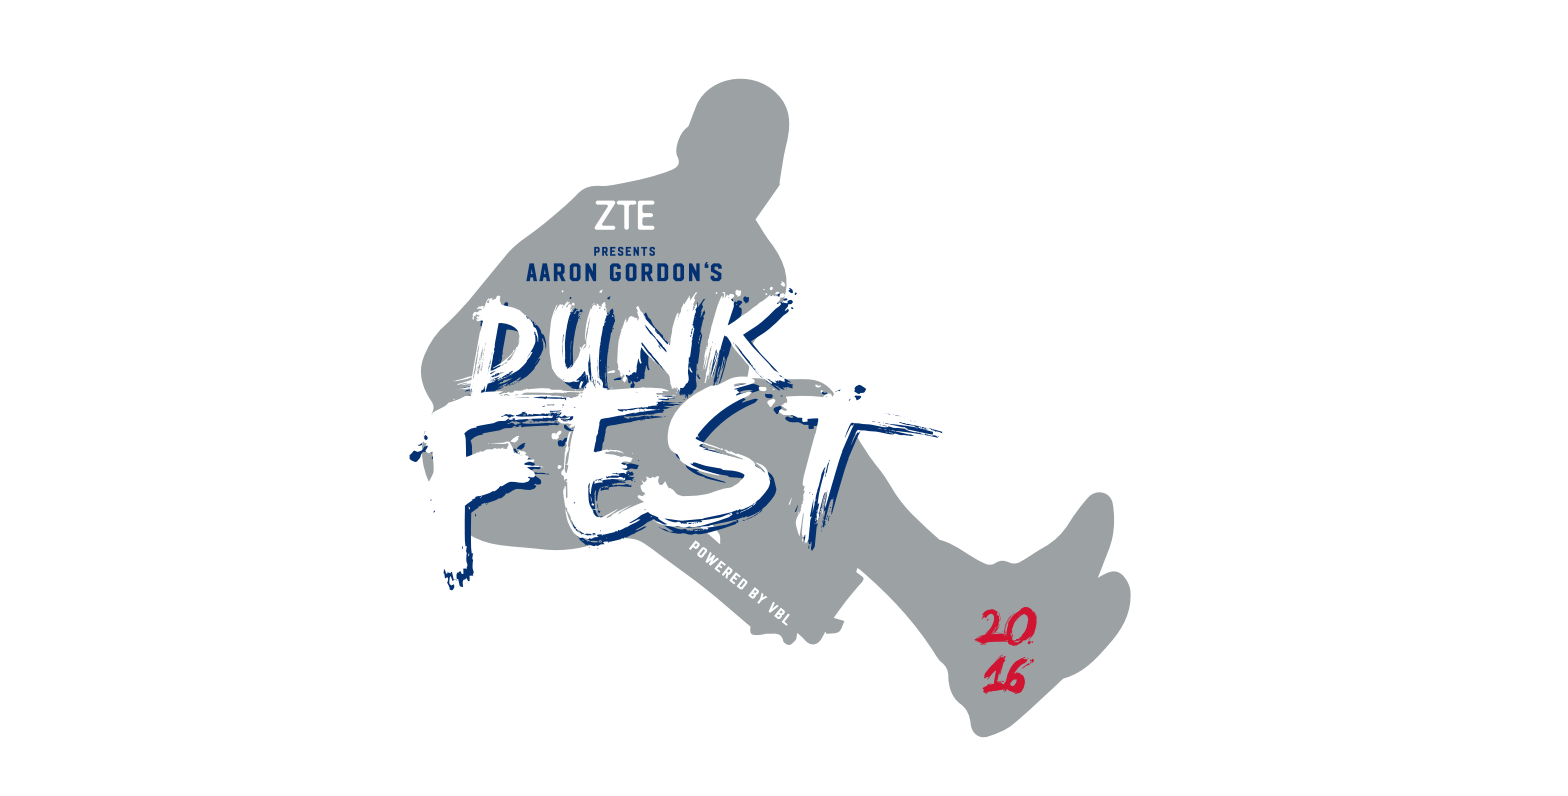 Aaron Gordon and ZTE presents the AG Dunk Fest – LINEUP